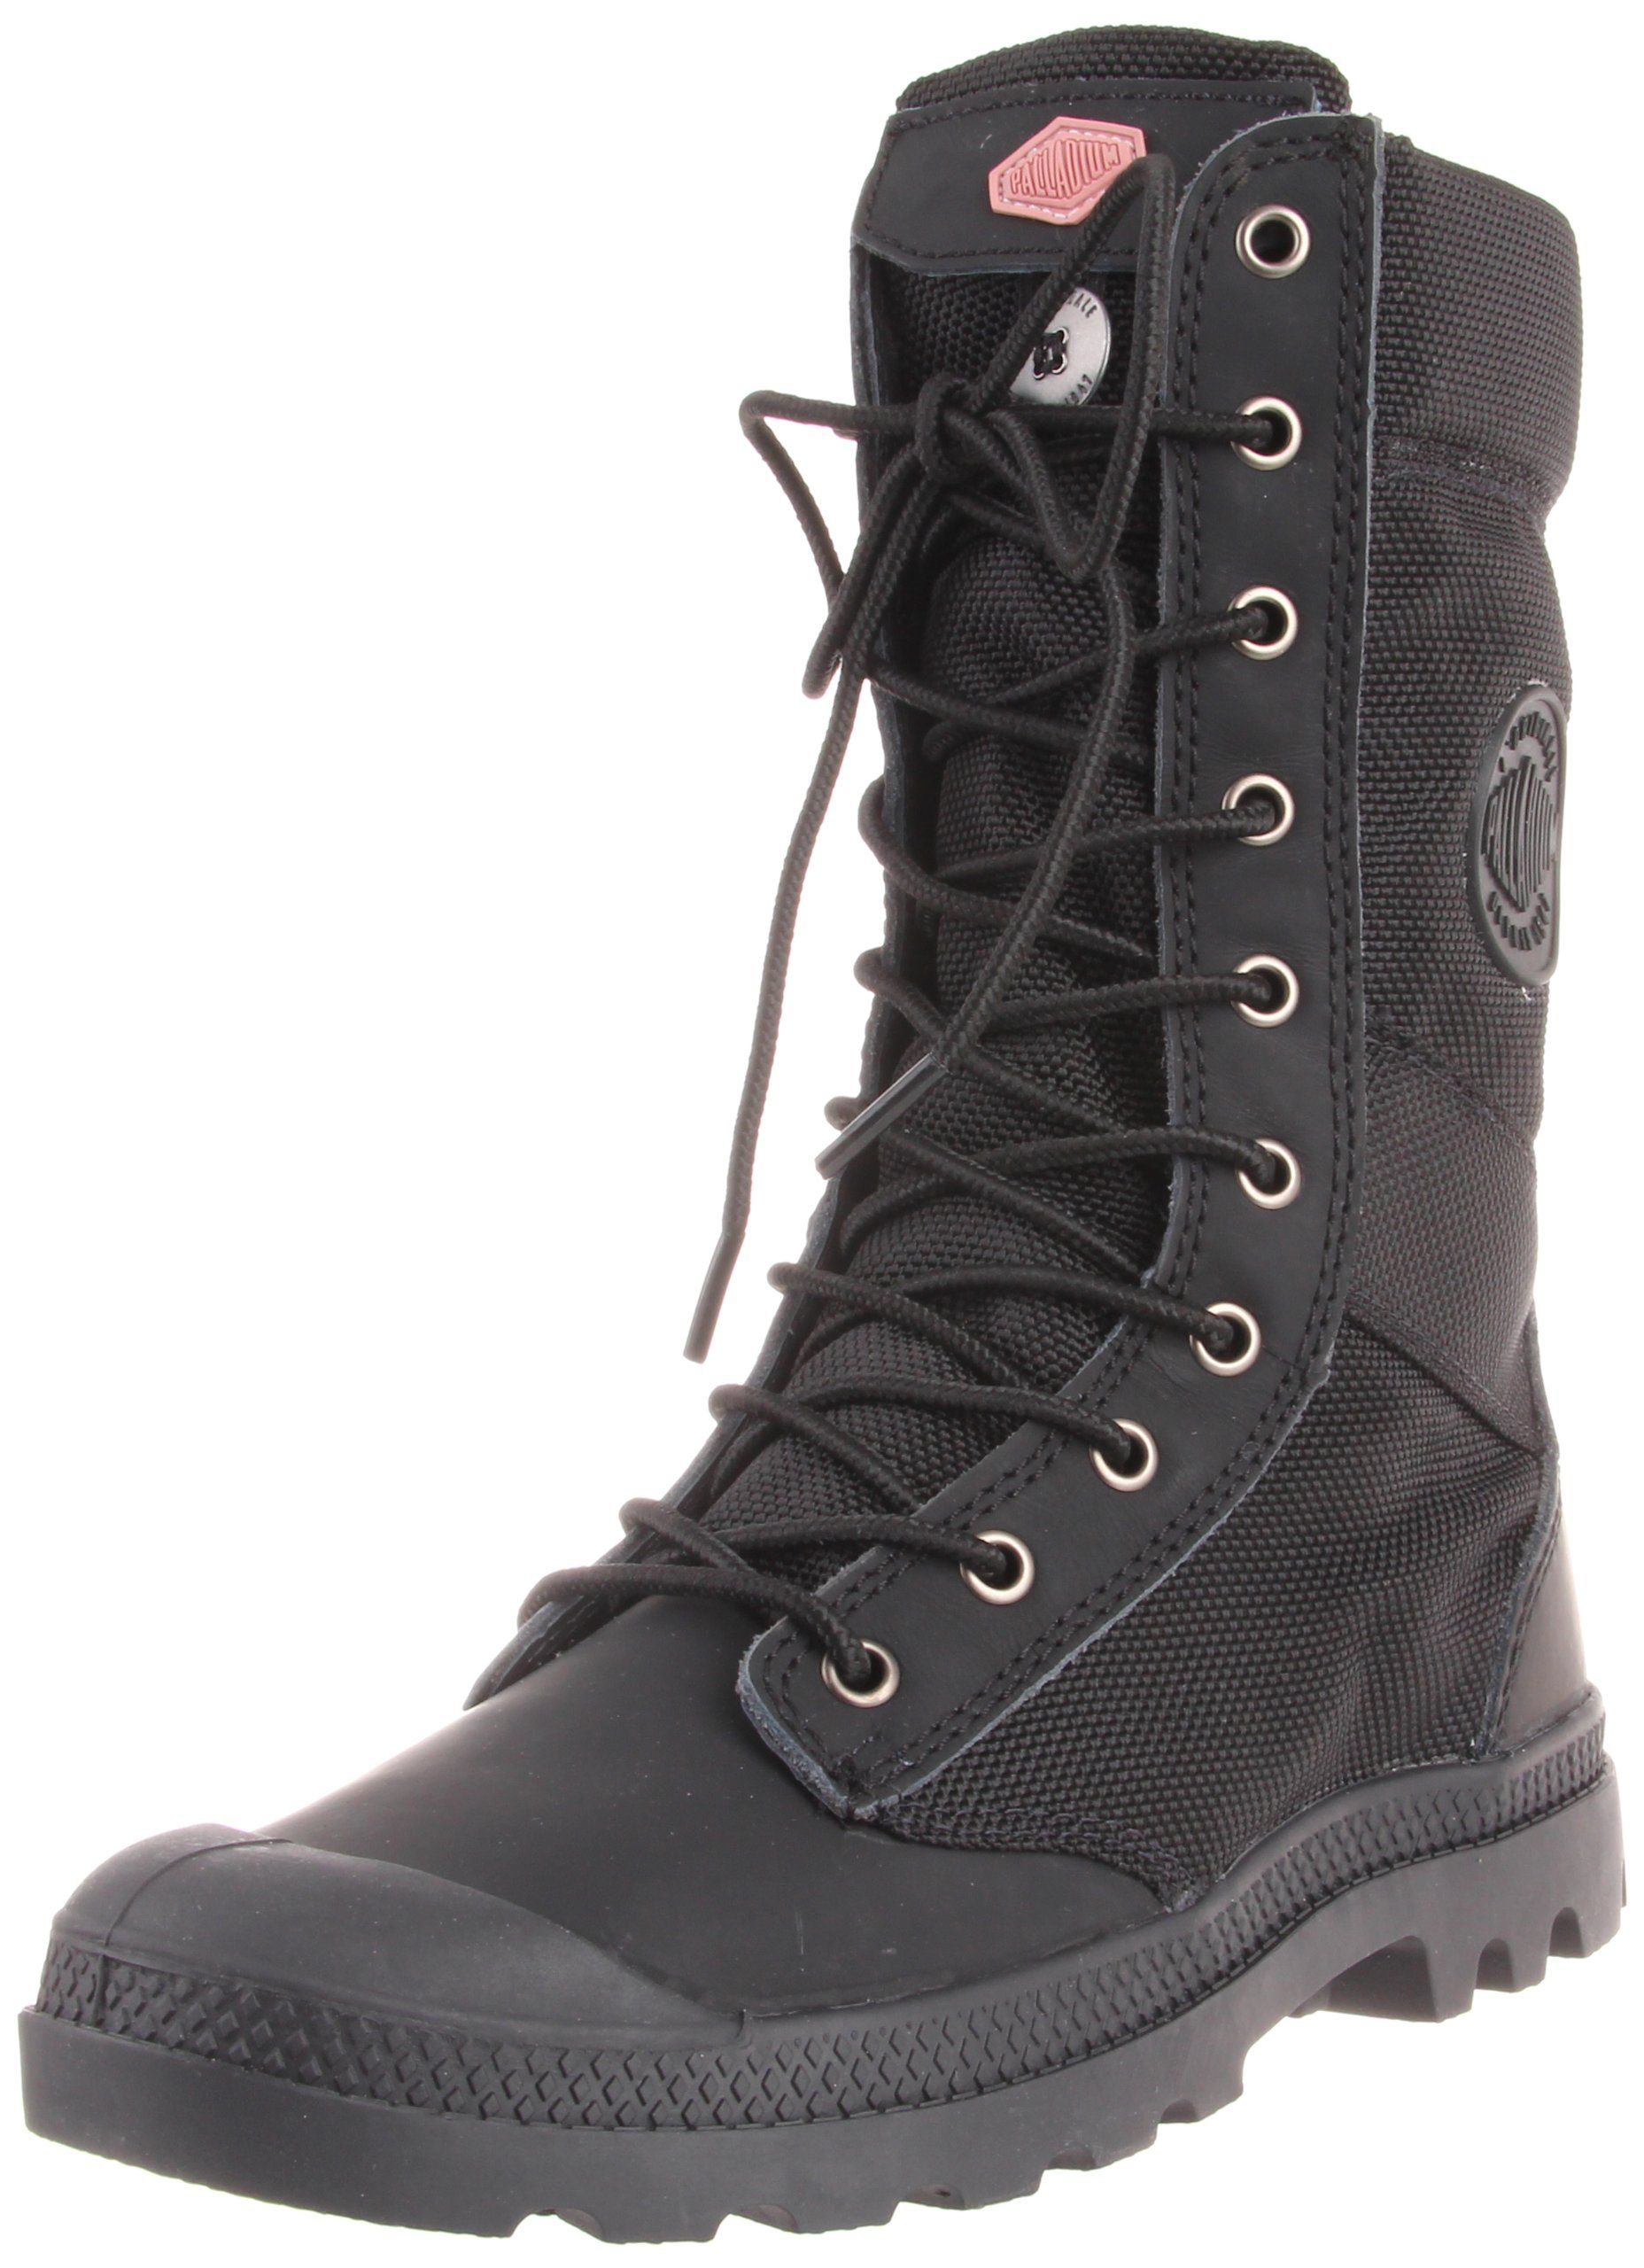 df2d6fe90cd Amazon.com: Palladium Women's Pampa Tactical Boot,Black/Old Rose,8.5 ...